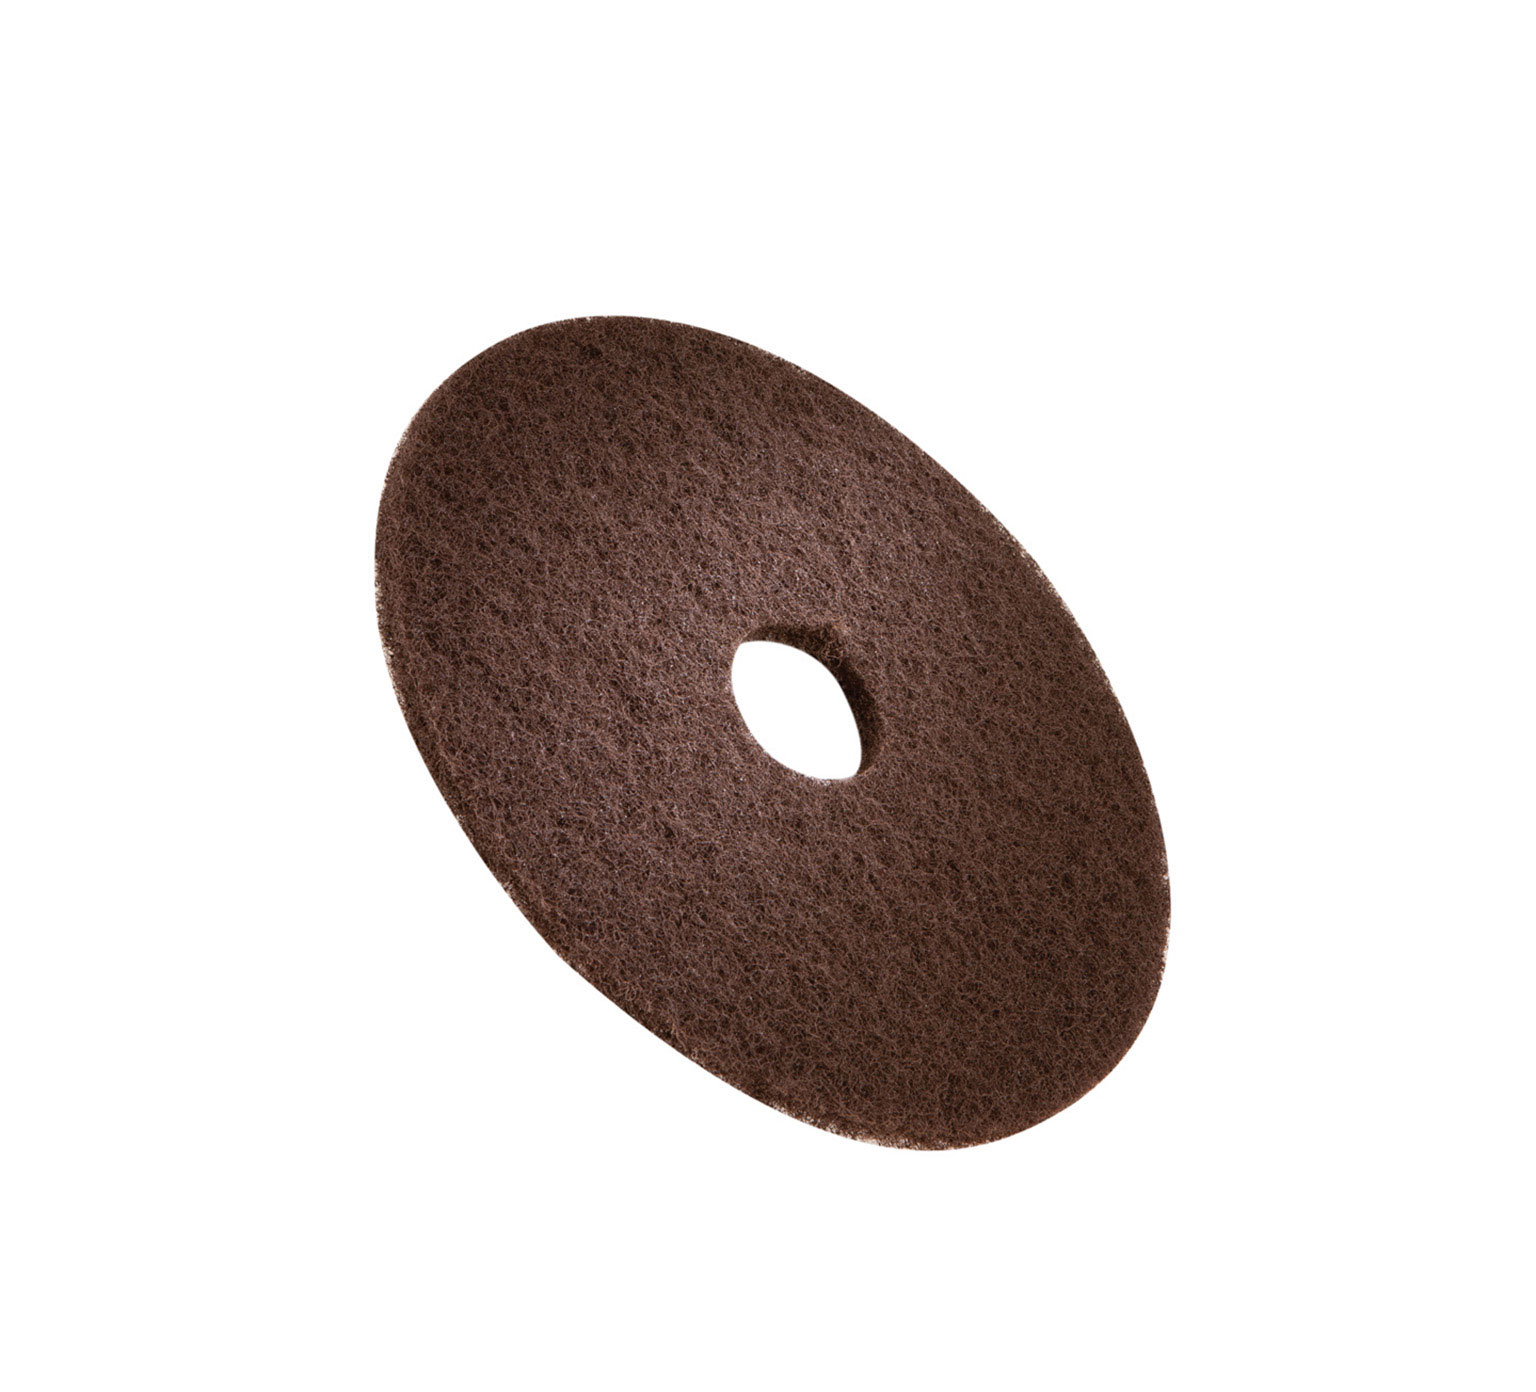 1050267 3M Brown Stripping Pad – 17 in / 432 mm alt 1